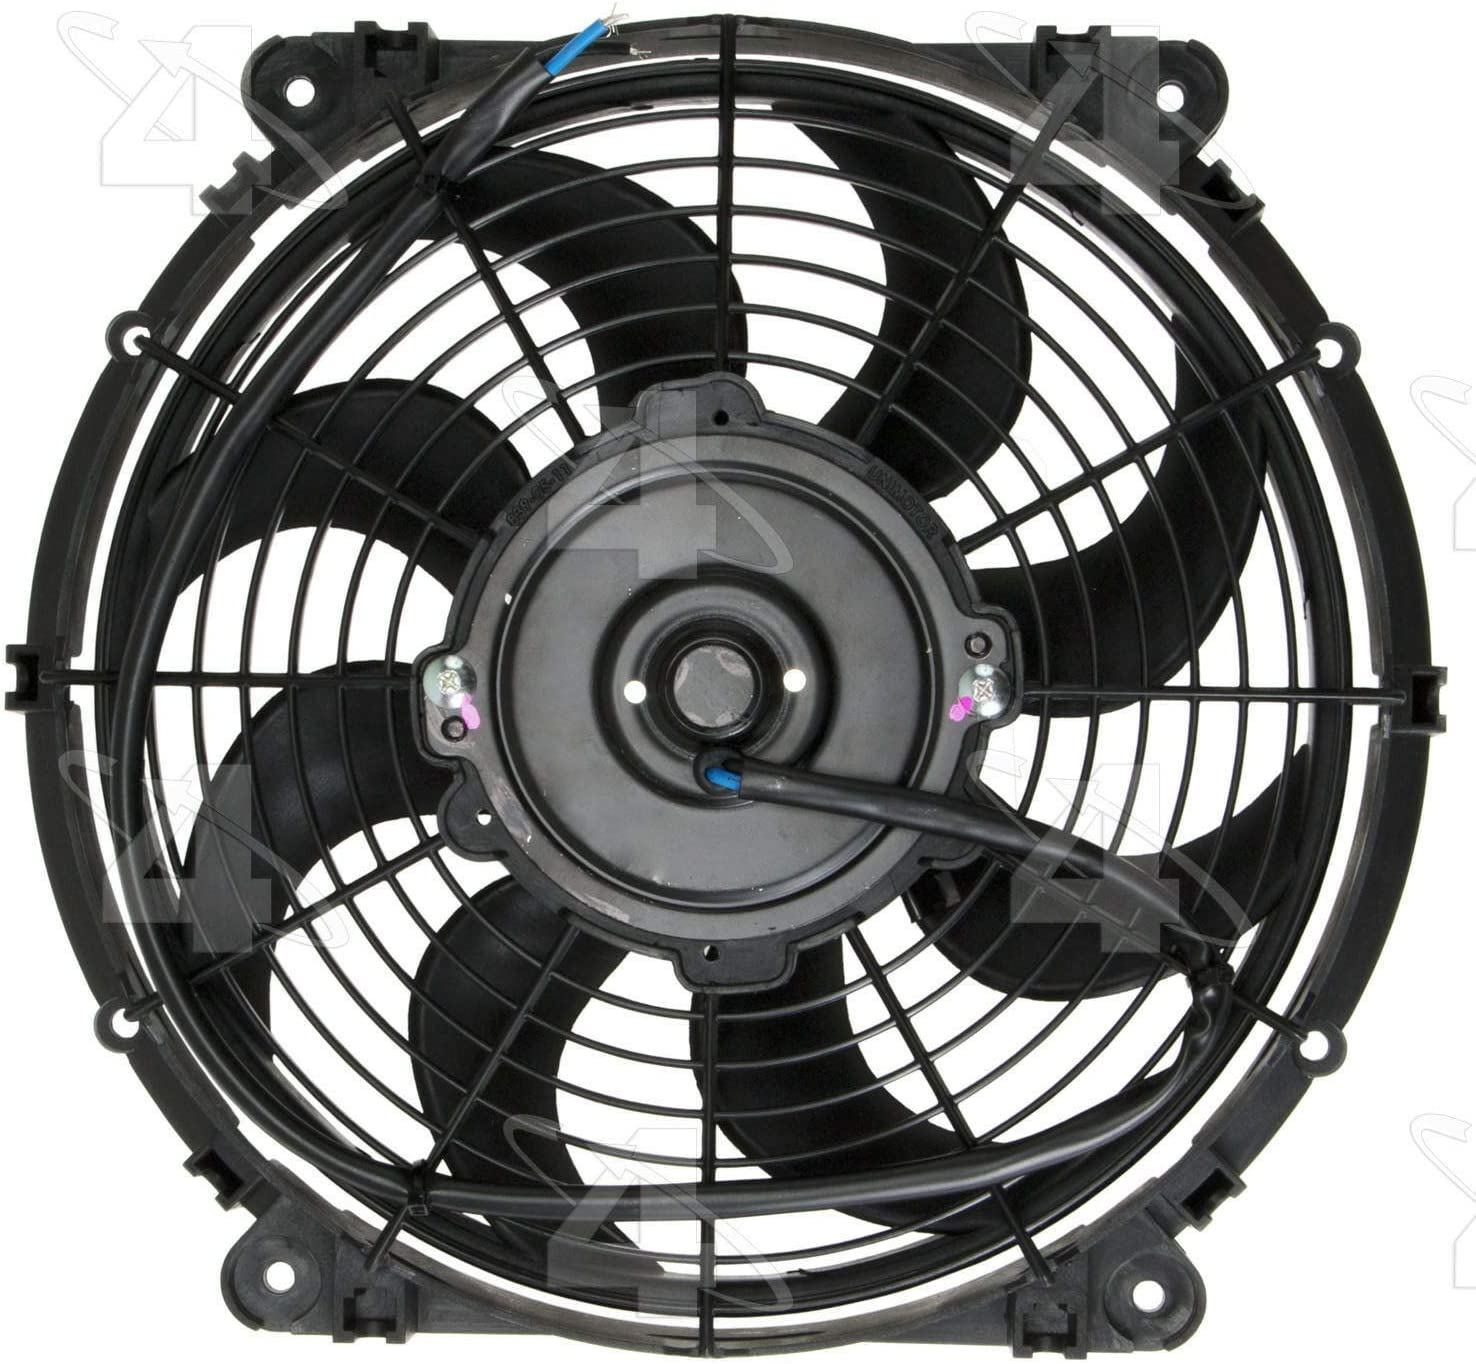 Four Seasons 36895 Reversible Fan Kit